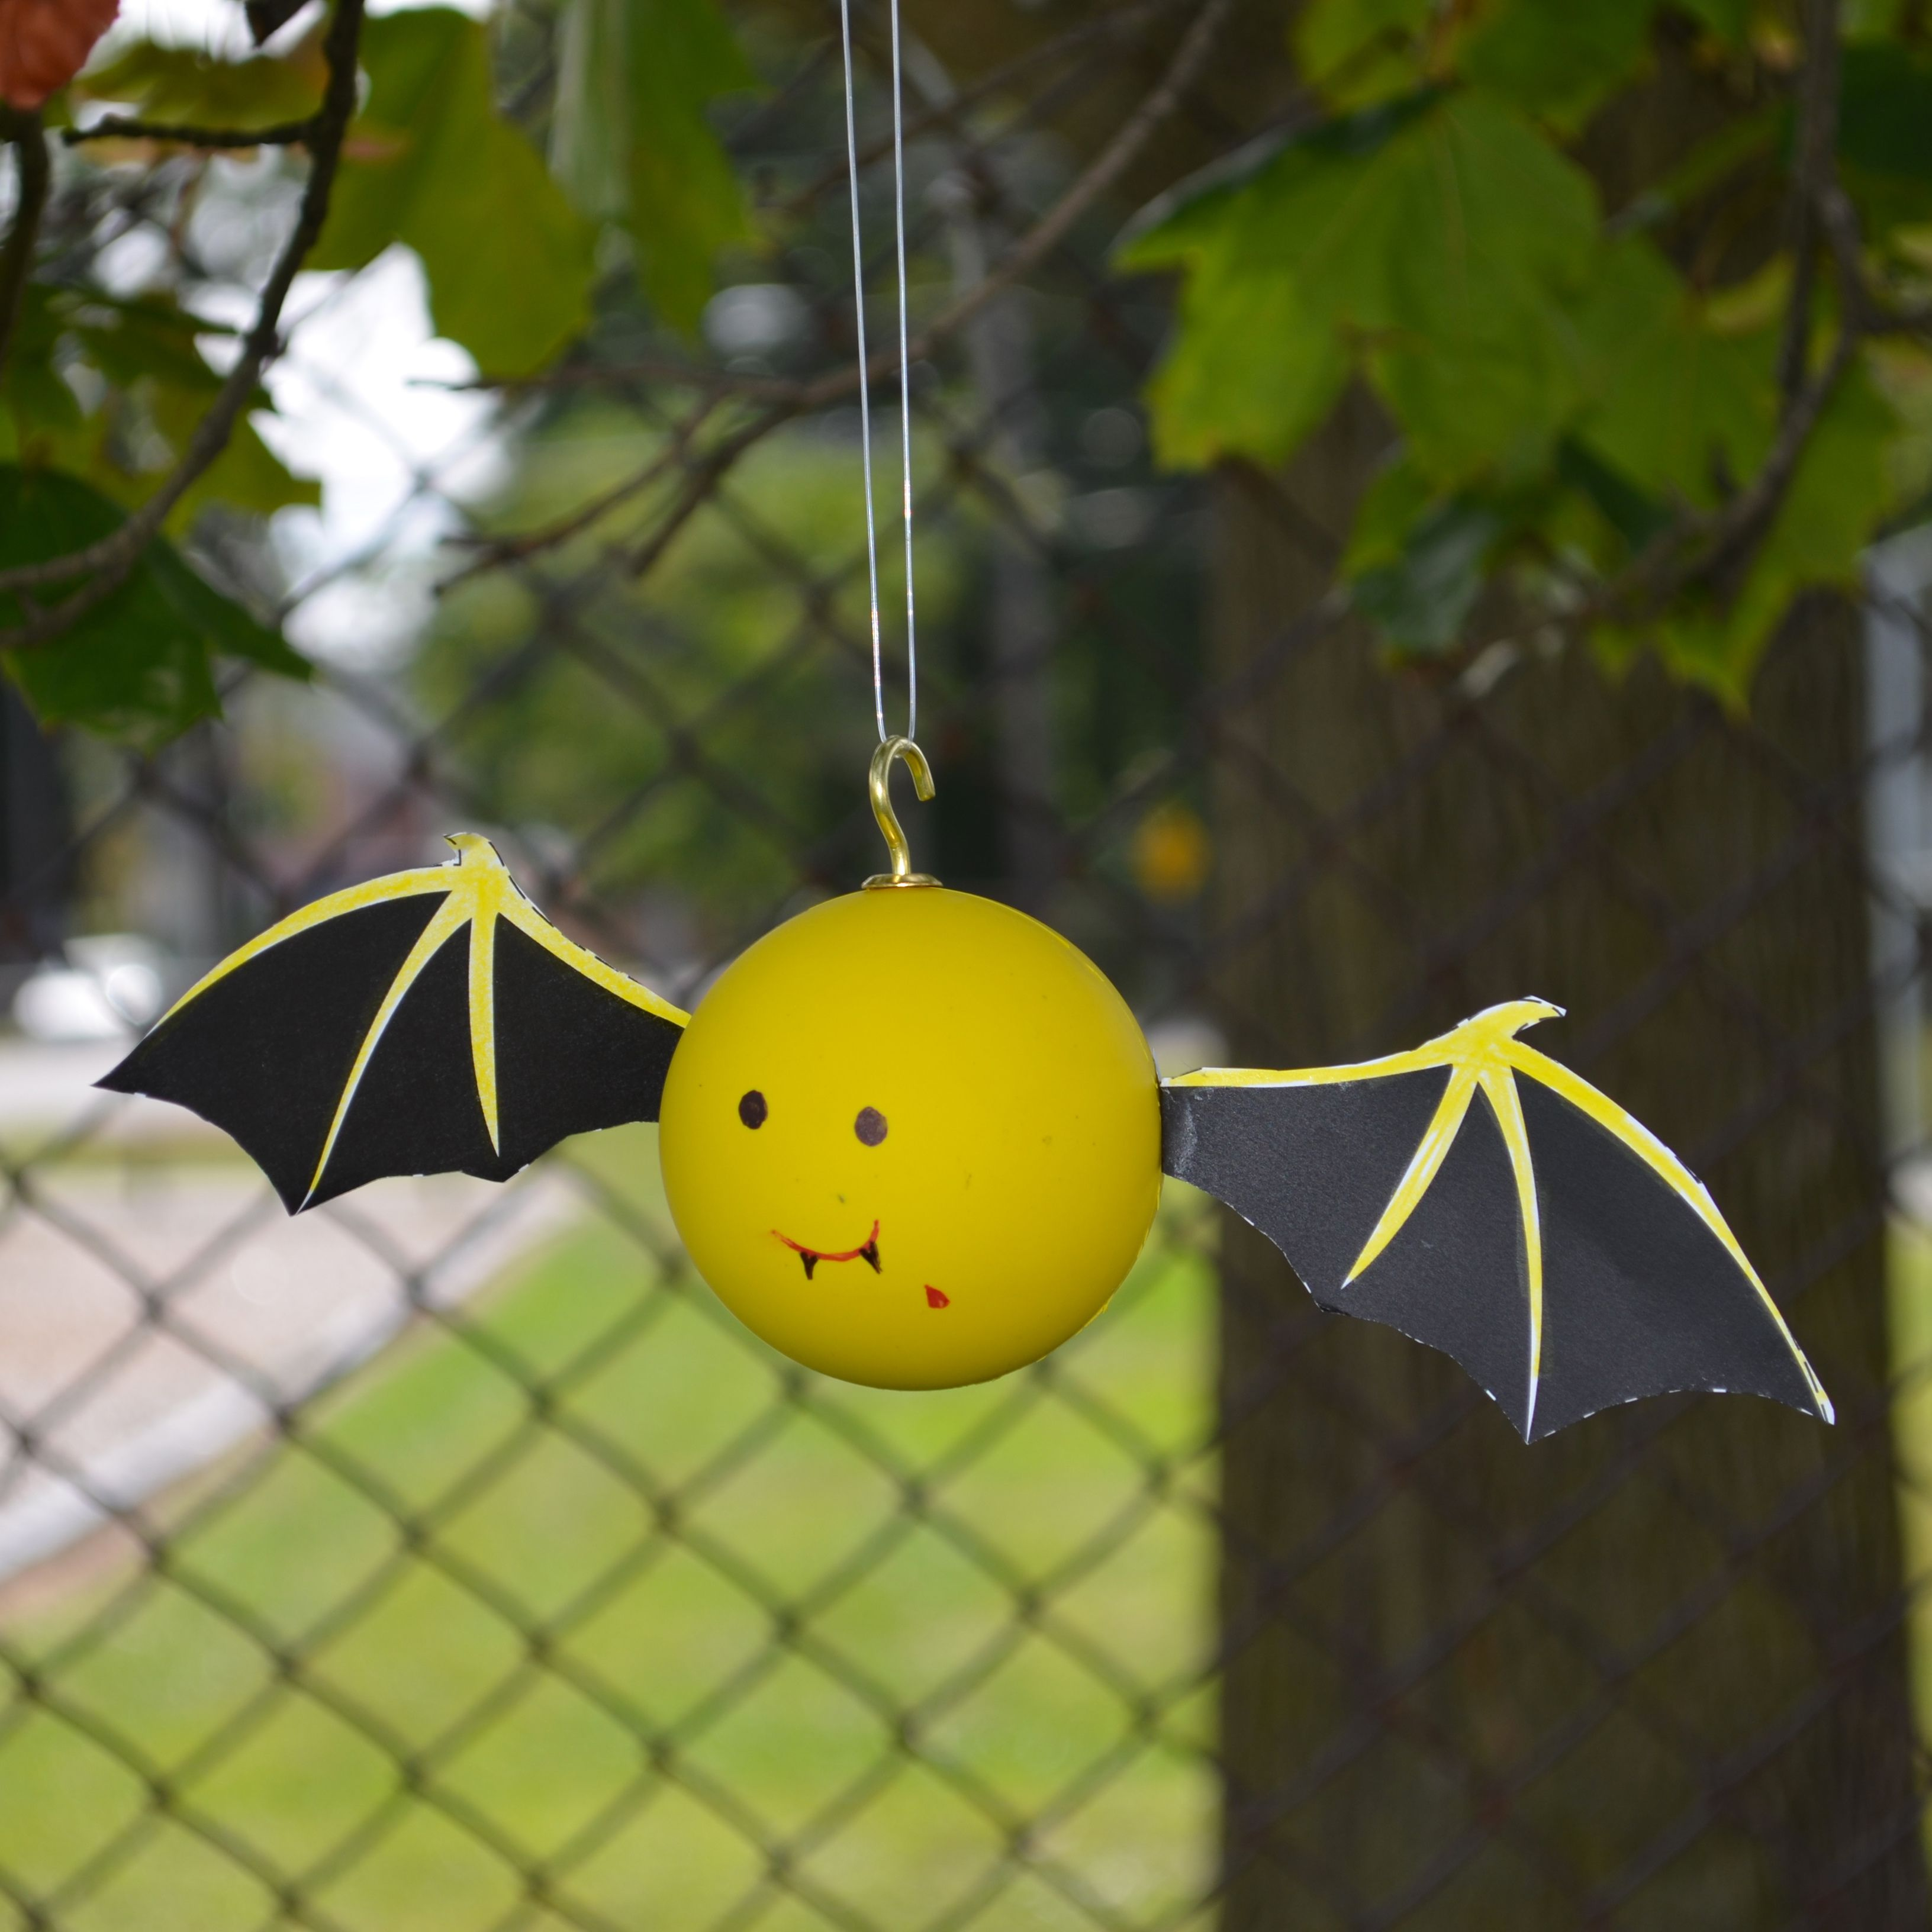 diy learn to create your own lacrosse ball bat halloween decorations on the blog